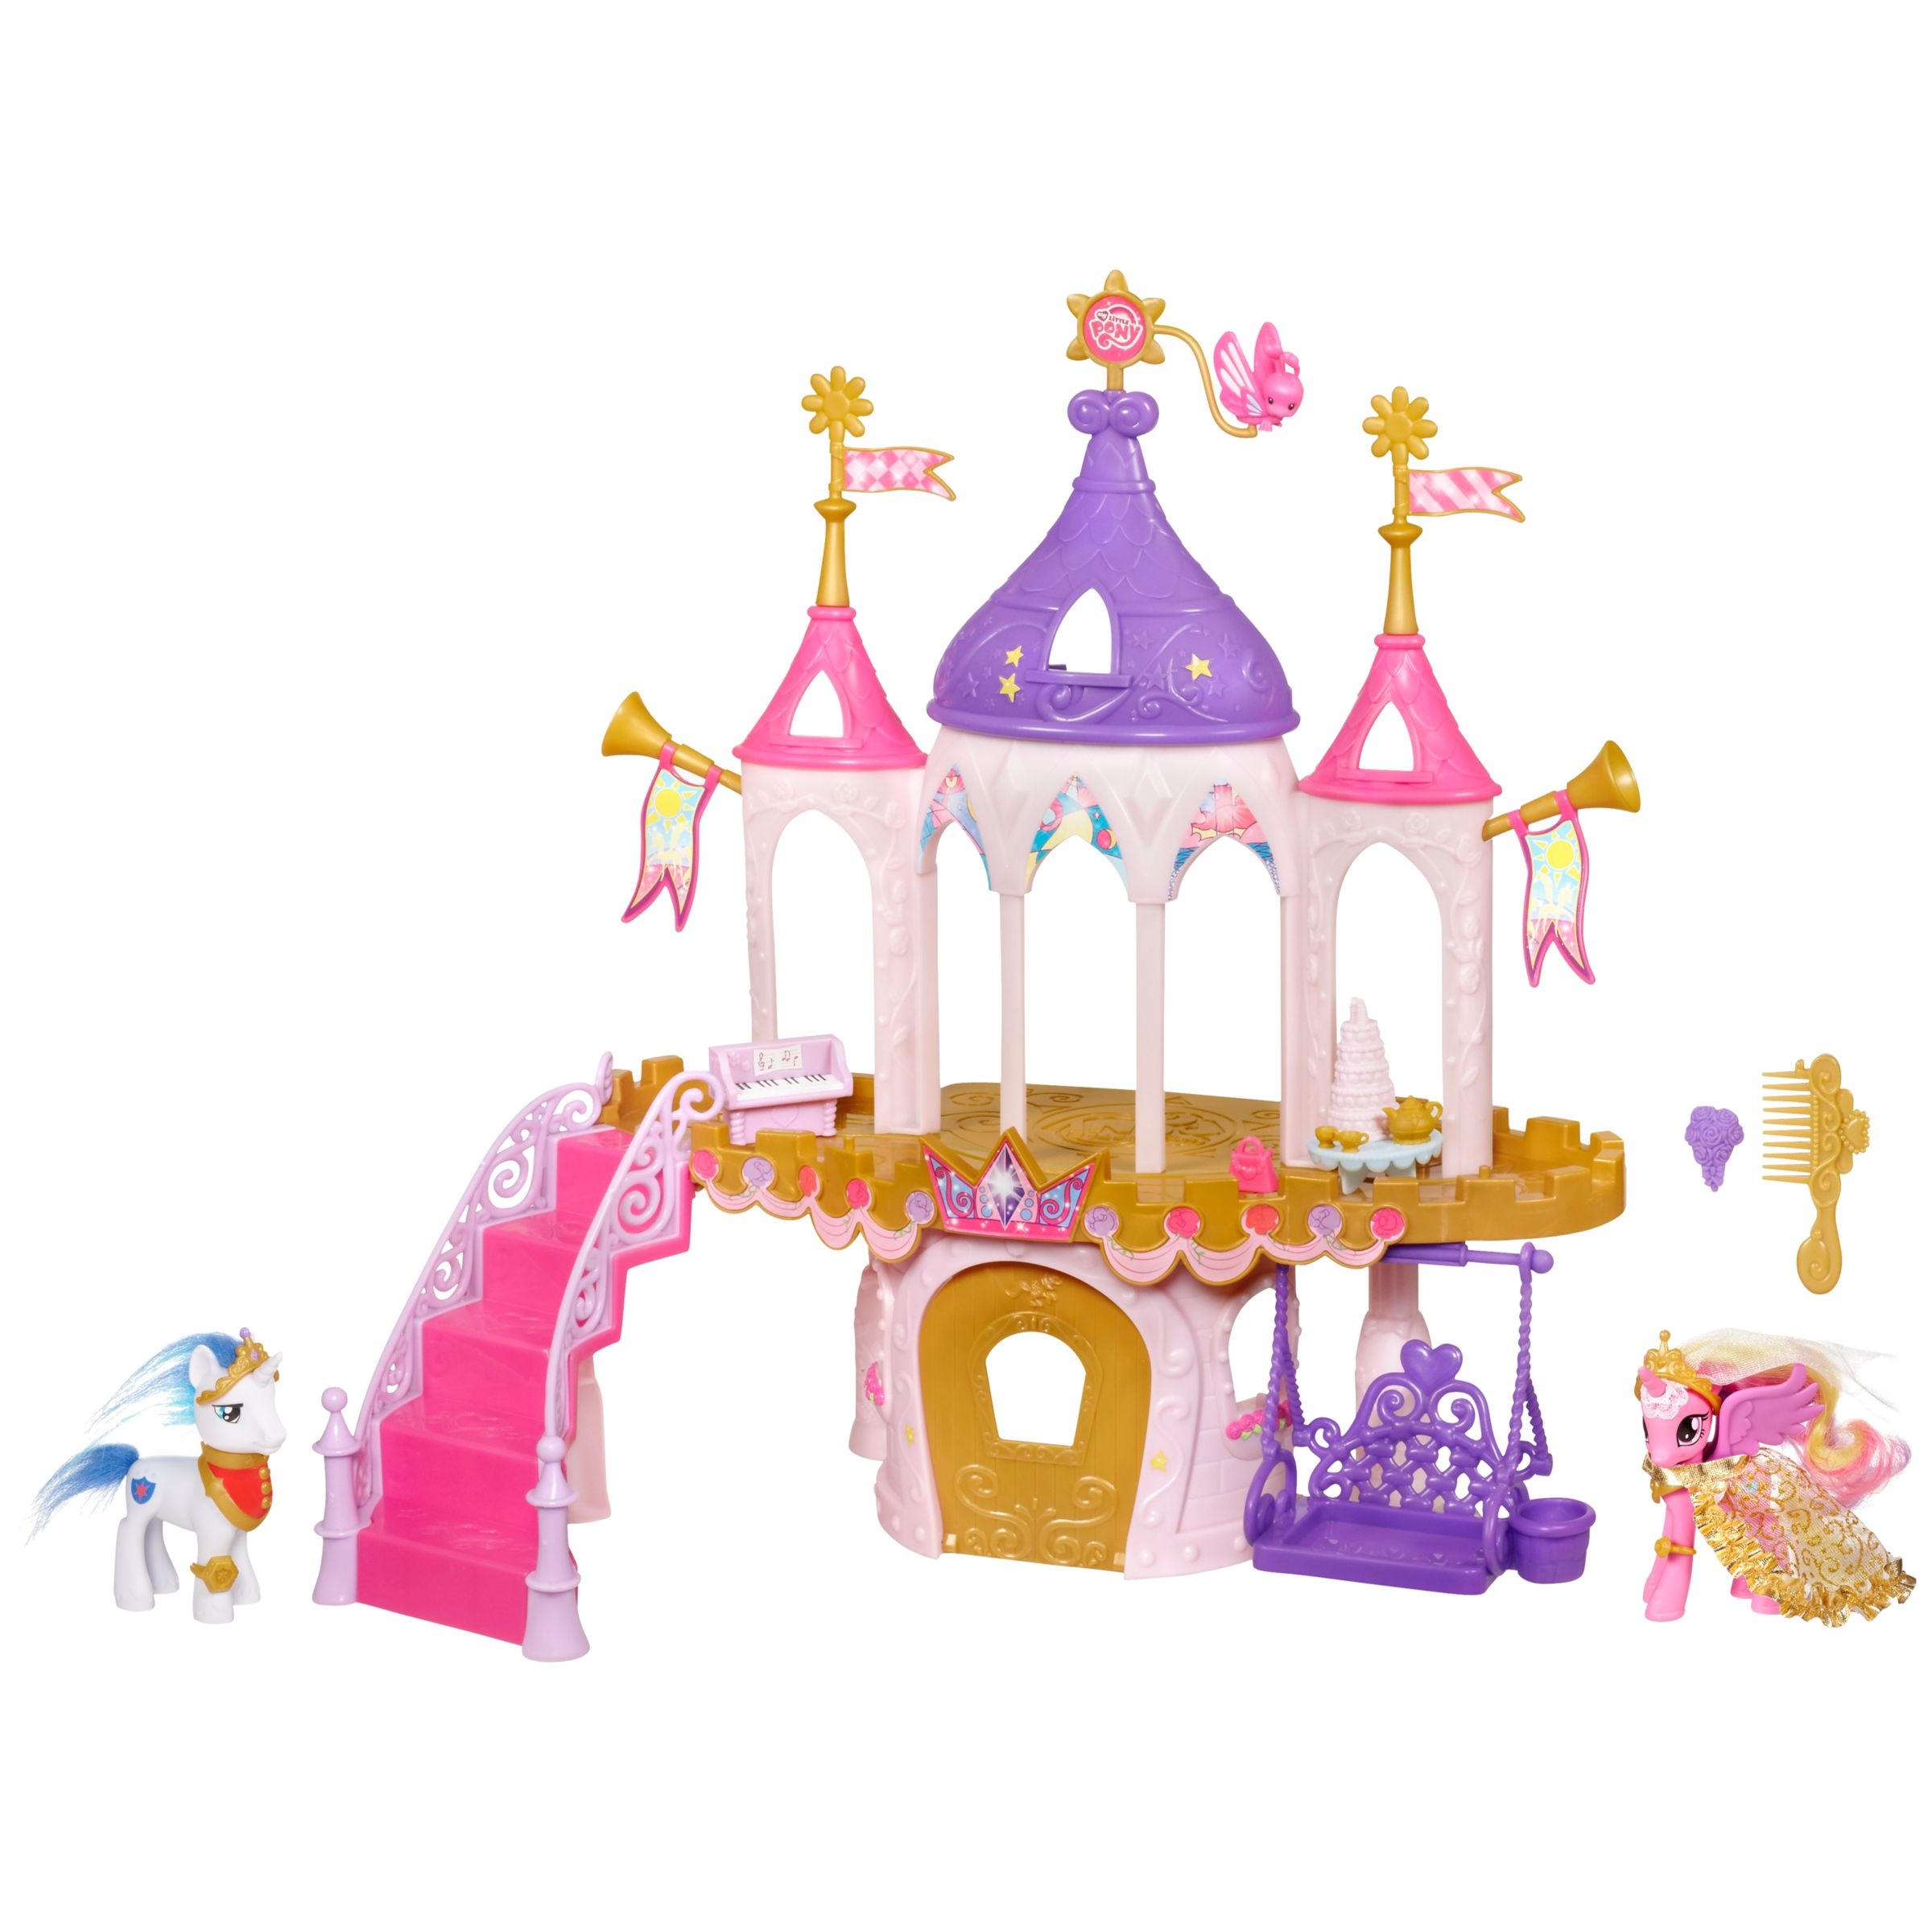 My Little Pony Royal Wedding Set